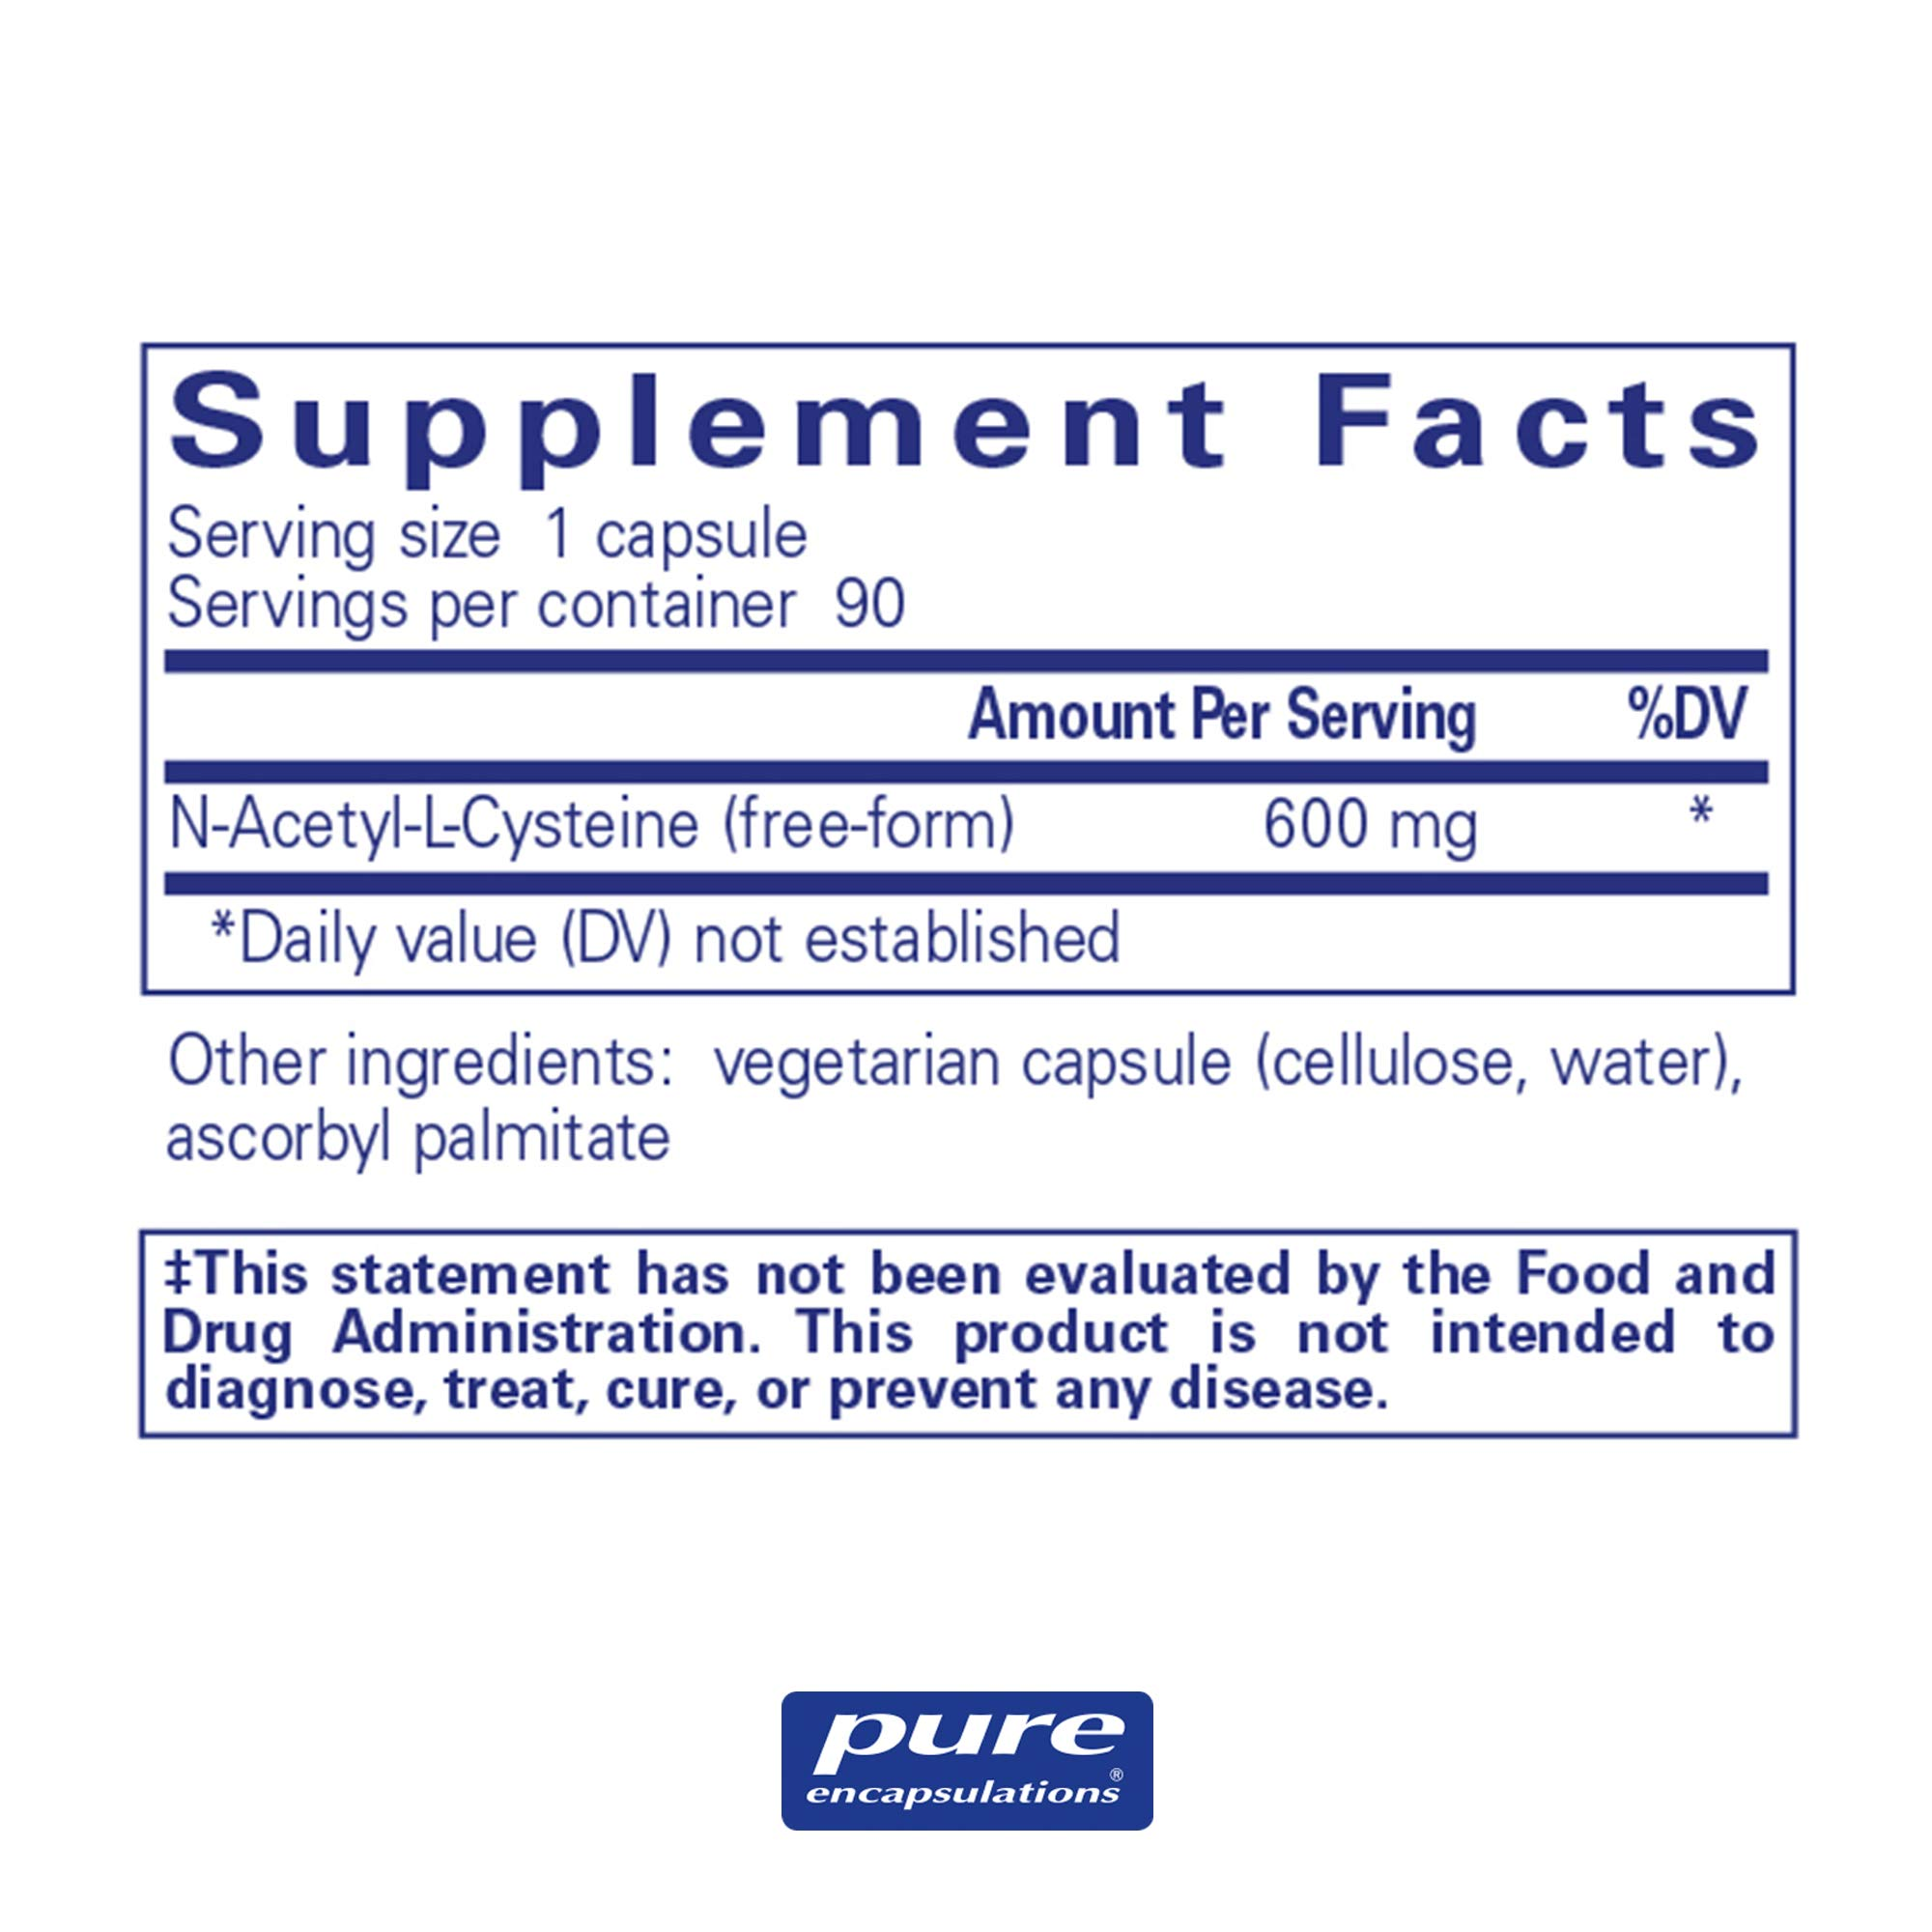 Pure Encapsulations - NAC (N-Acetyl-L-Cysteine) 600 mg - Amino Acids to Support Antioxidant Defense and Healthy Lung Tissue - 90 Capsules by Pure Encapsulations (Image #2)